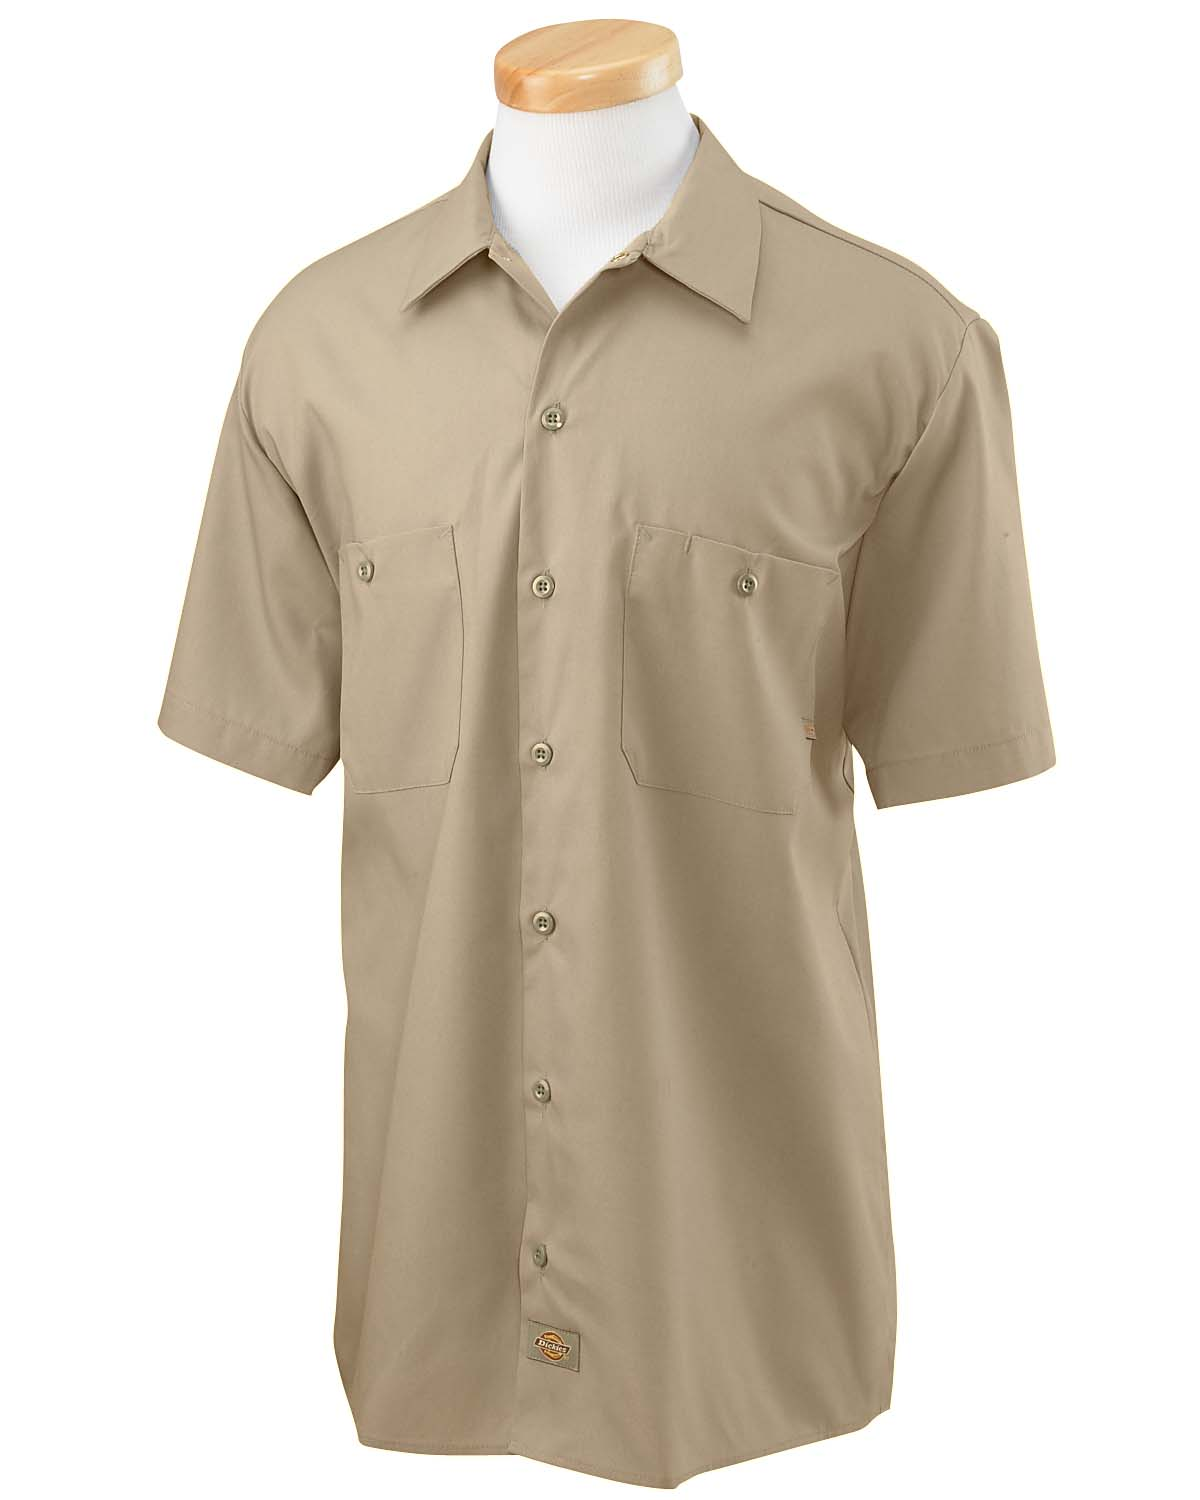 Dickies 65 Polyester 35 Cotton Industrial Short Sleeve